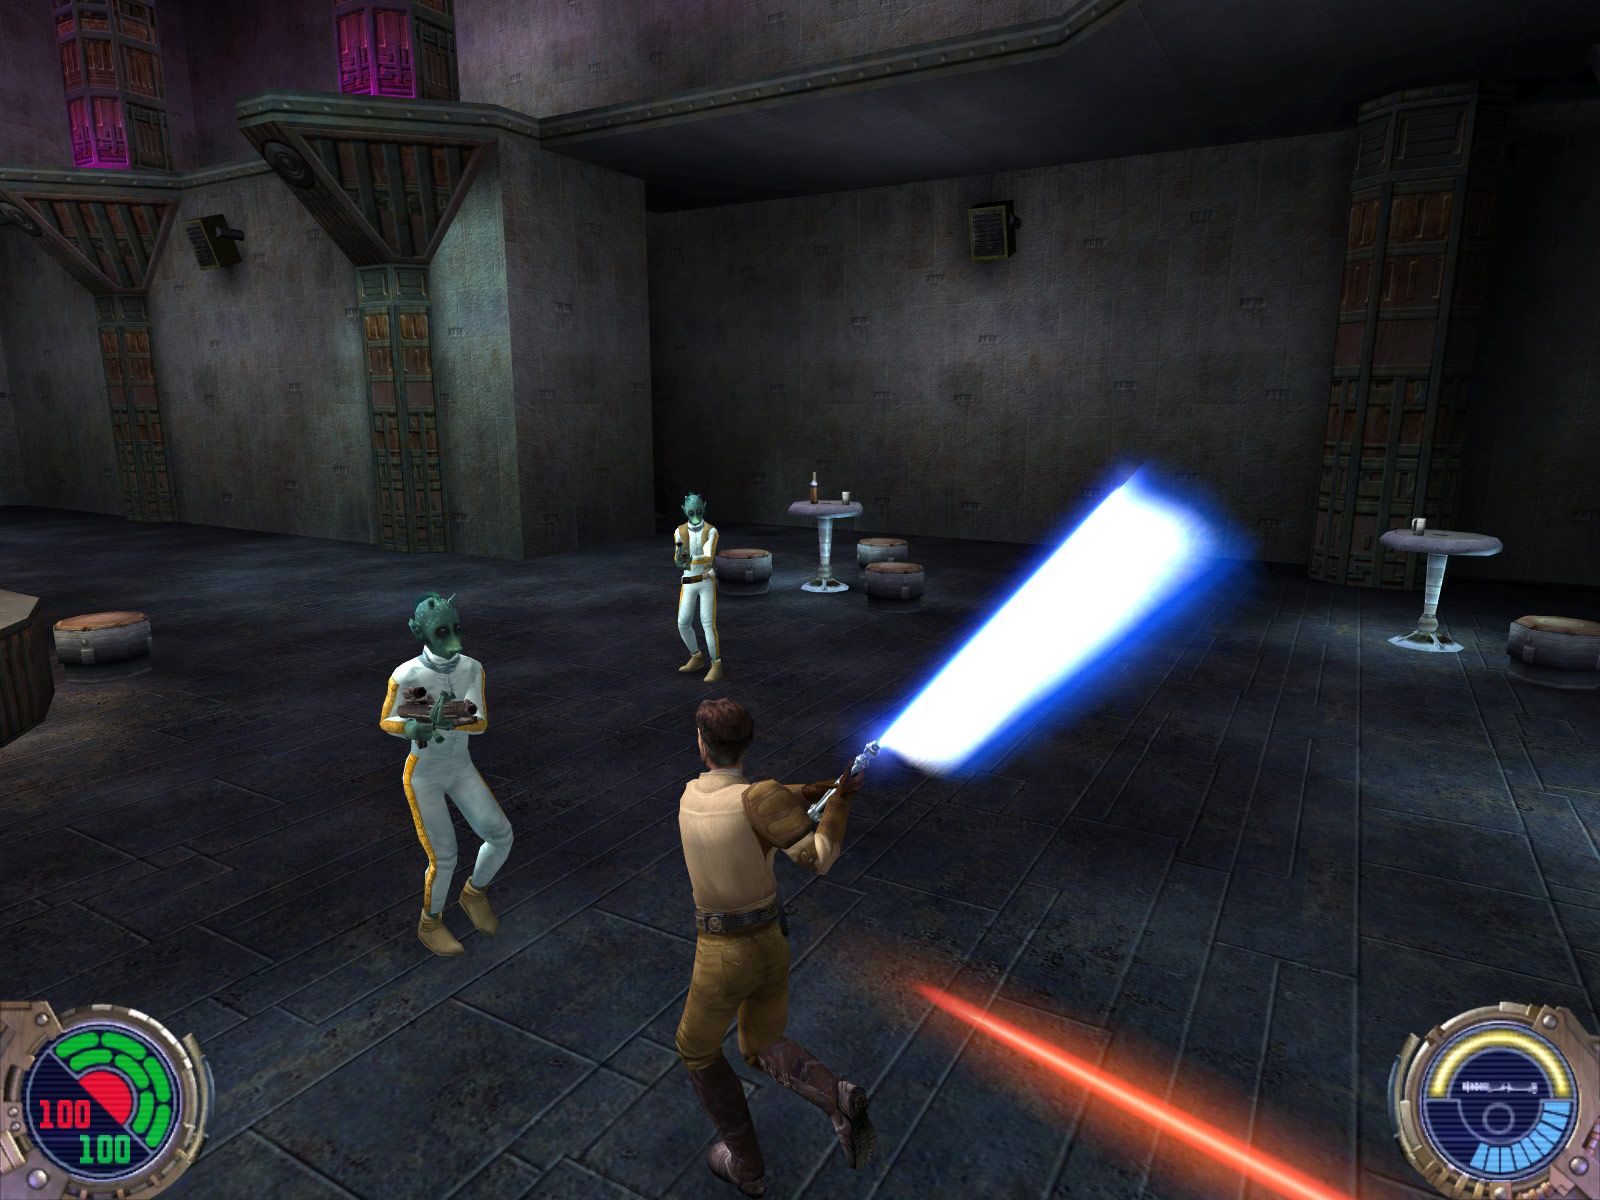 STAR WARS Jedi Knight II - Jedi Outcast screenshot